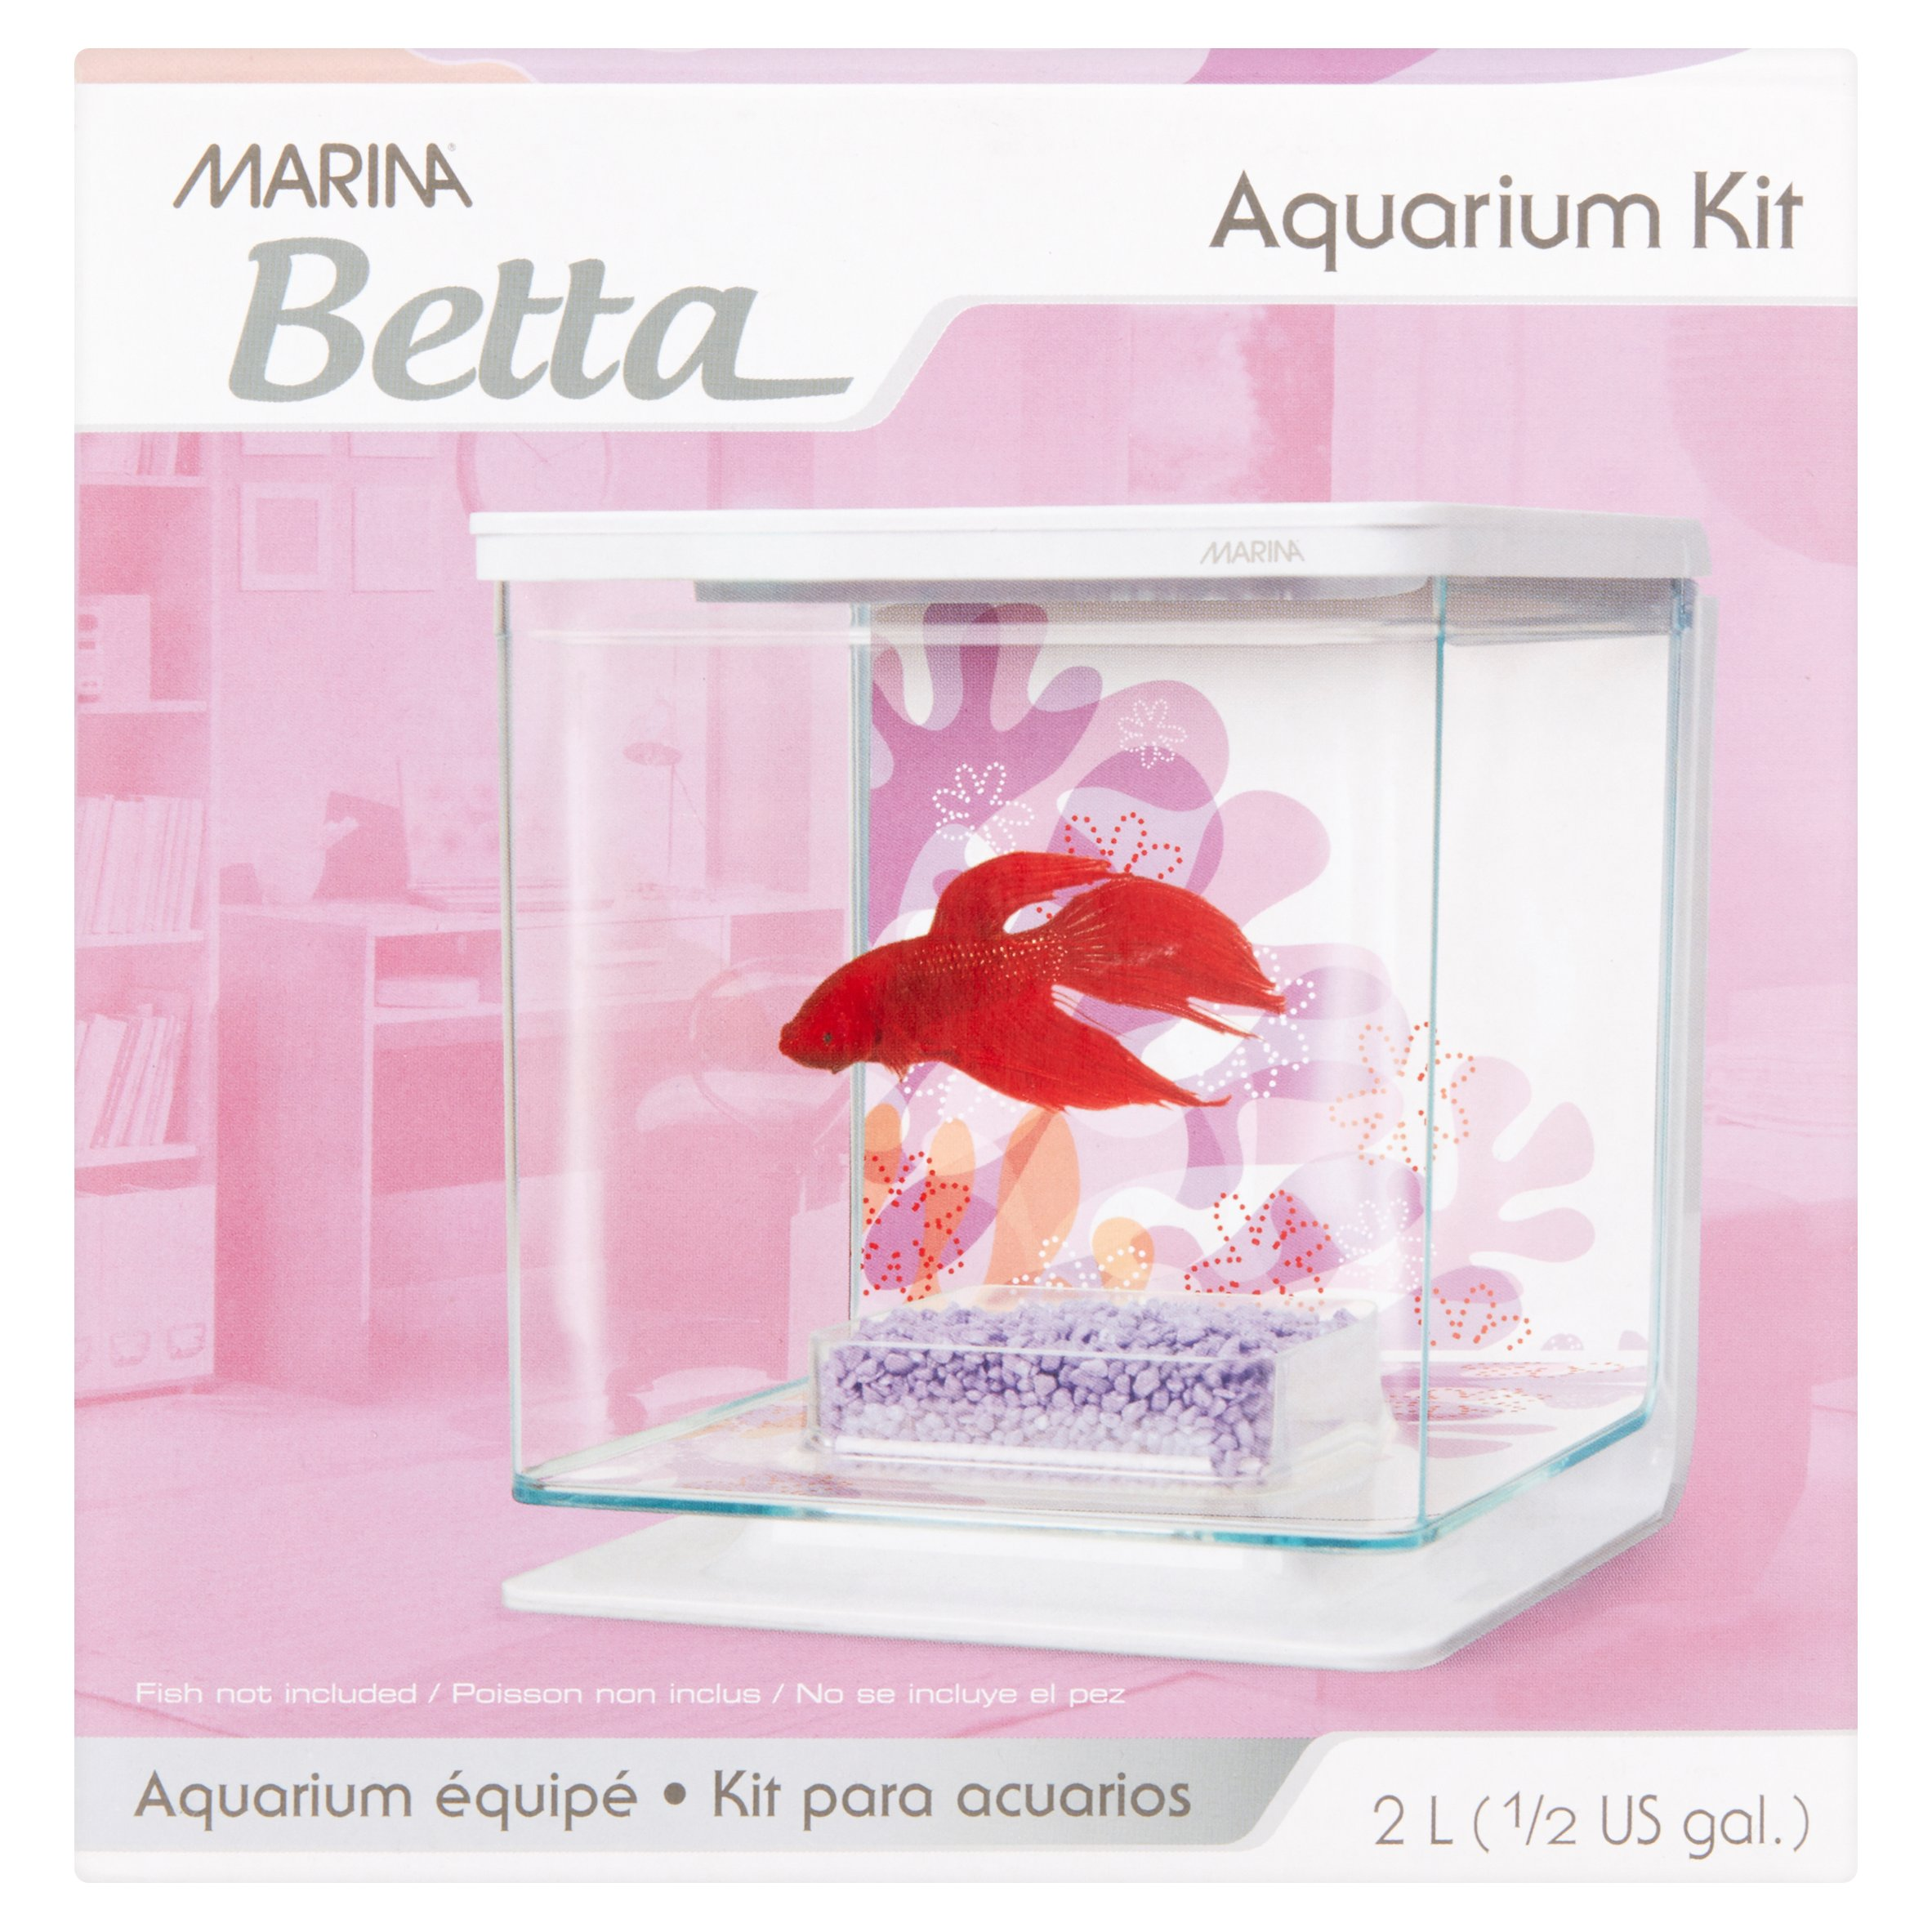 Marina Betta 0.5-Gallon Aquarium Starter Kit, Flower Design